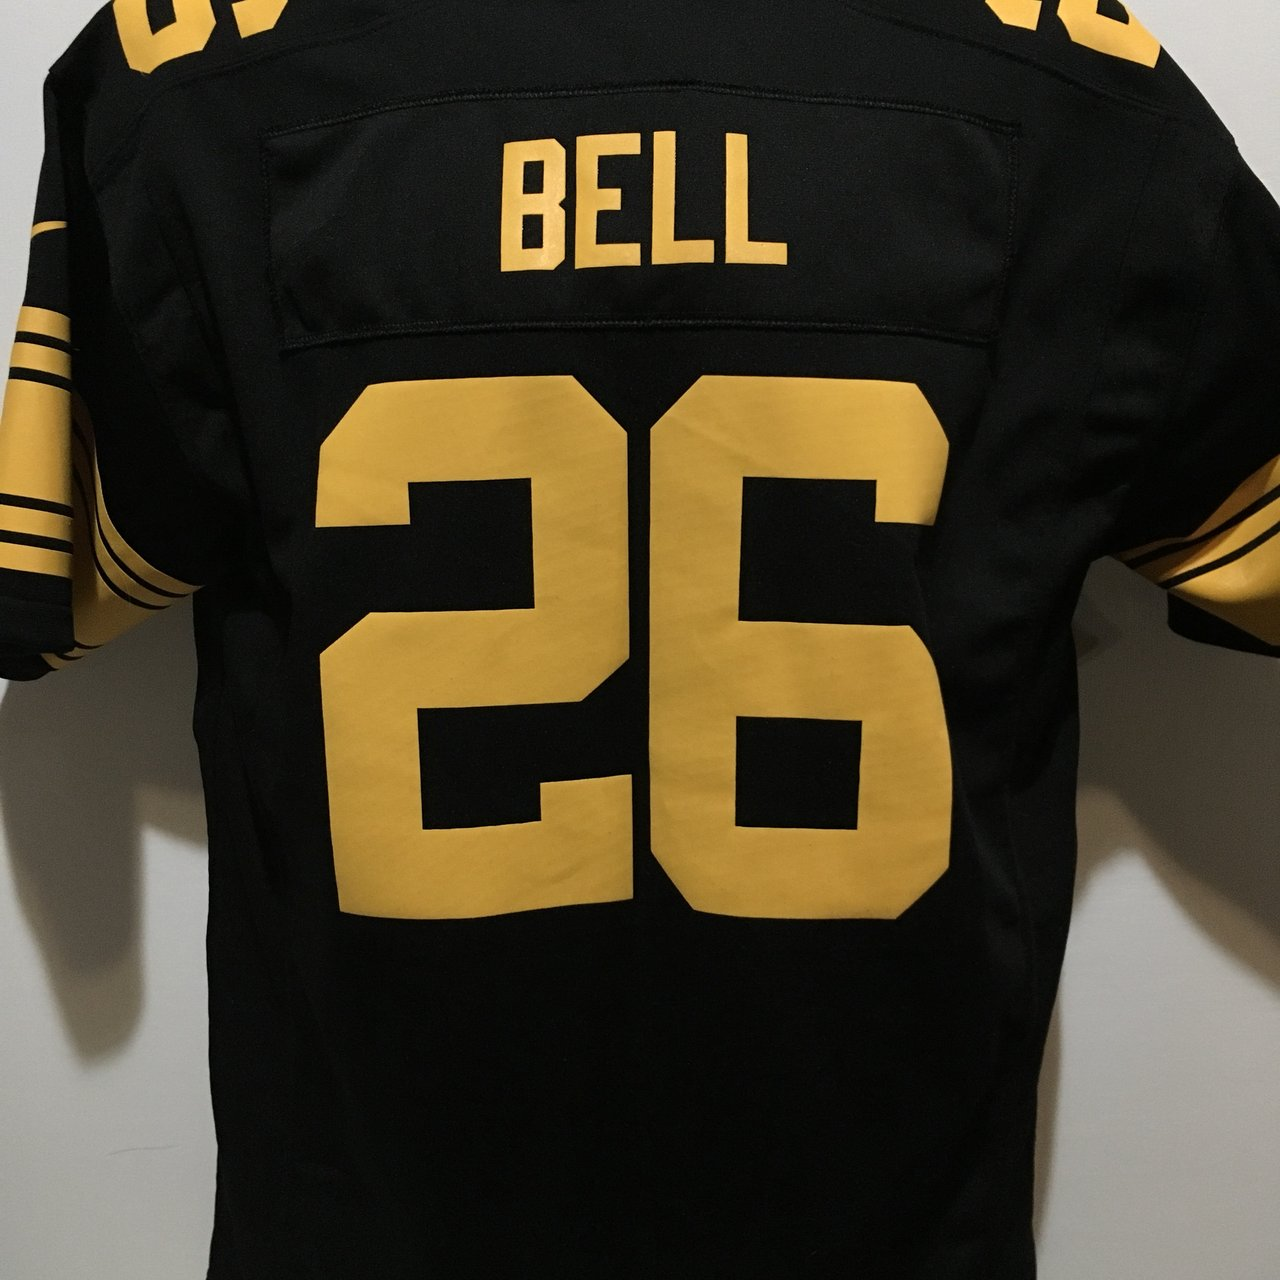 Le Veon Bell Nike NFL Jersey Brand New cb5192e77